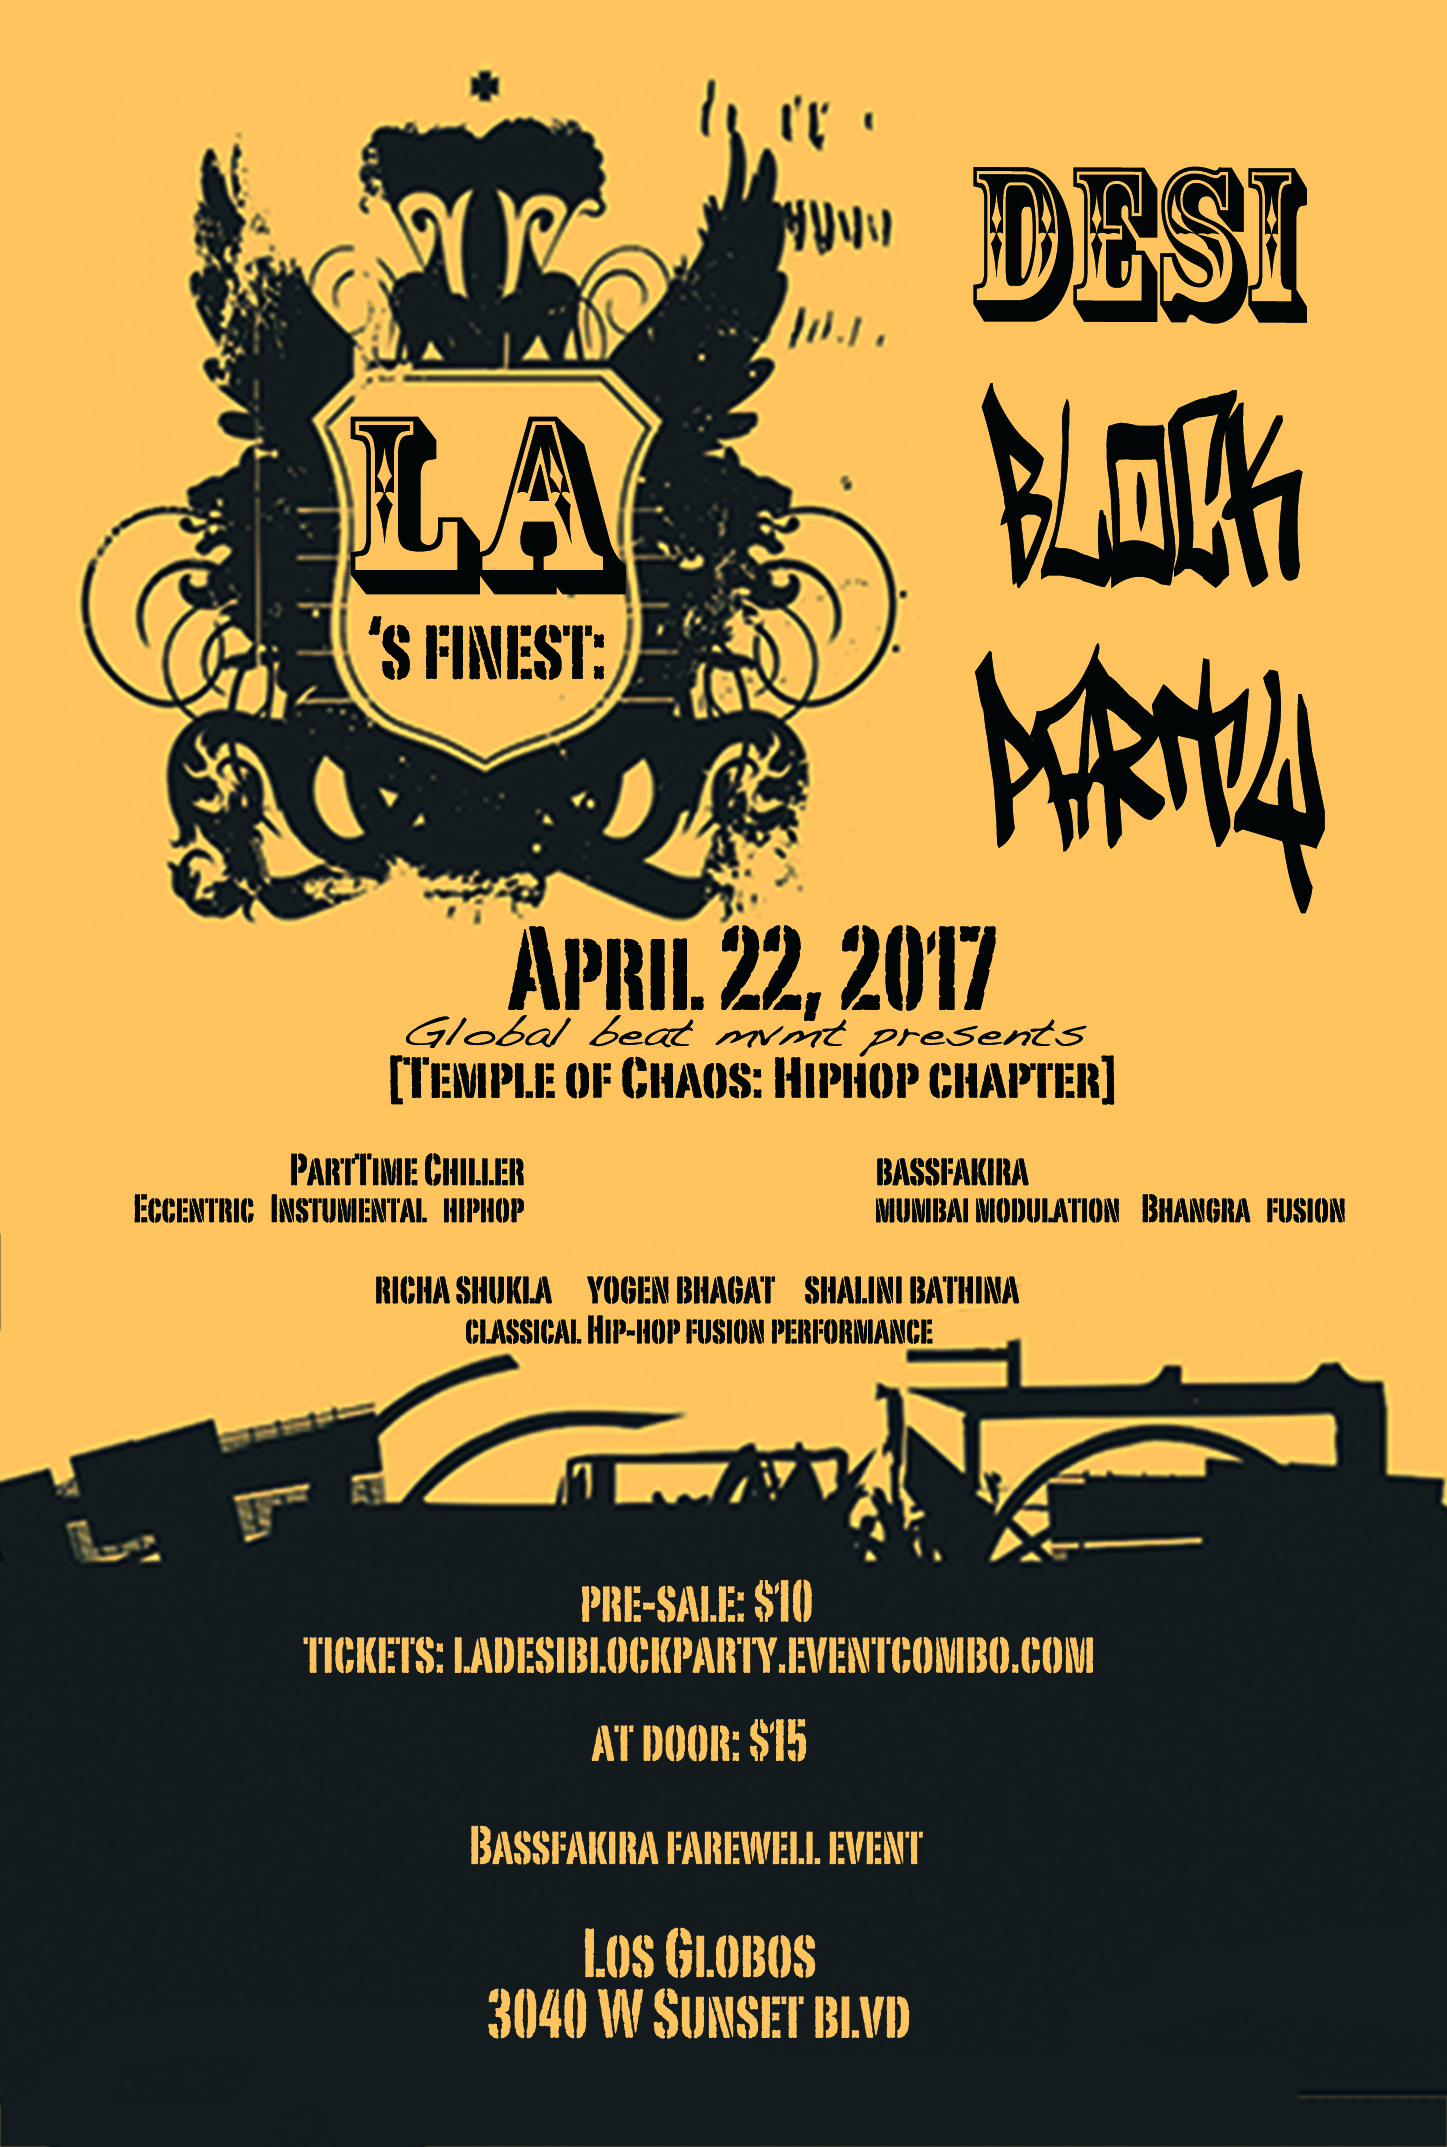 LA's Finest- DESI BLOCK PARTY